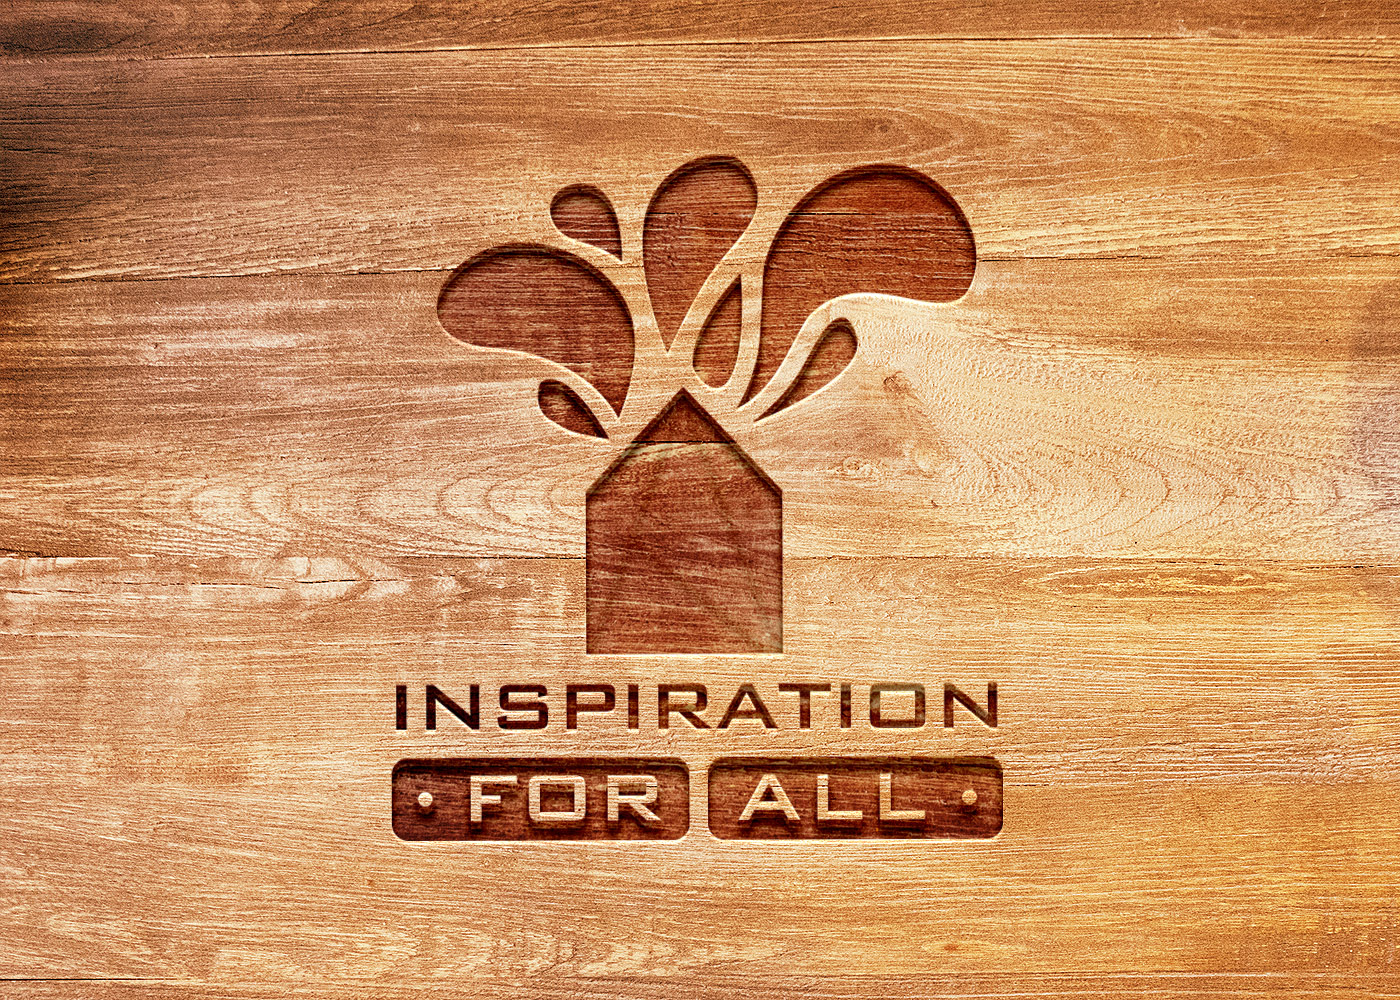 inspiration-for-all_logo_v2_klein